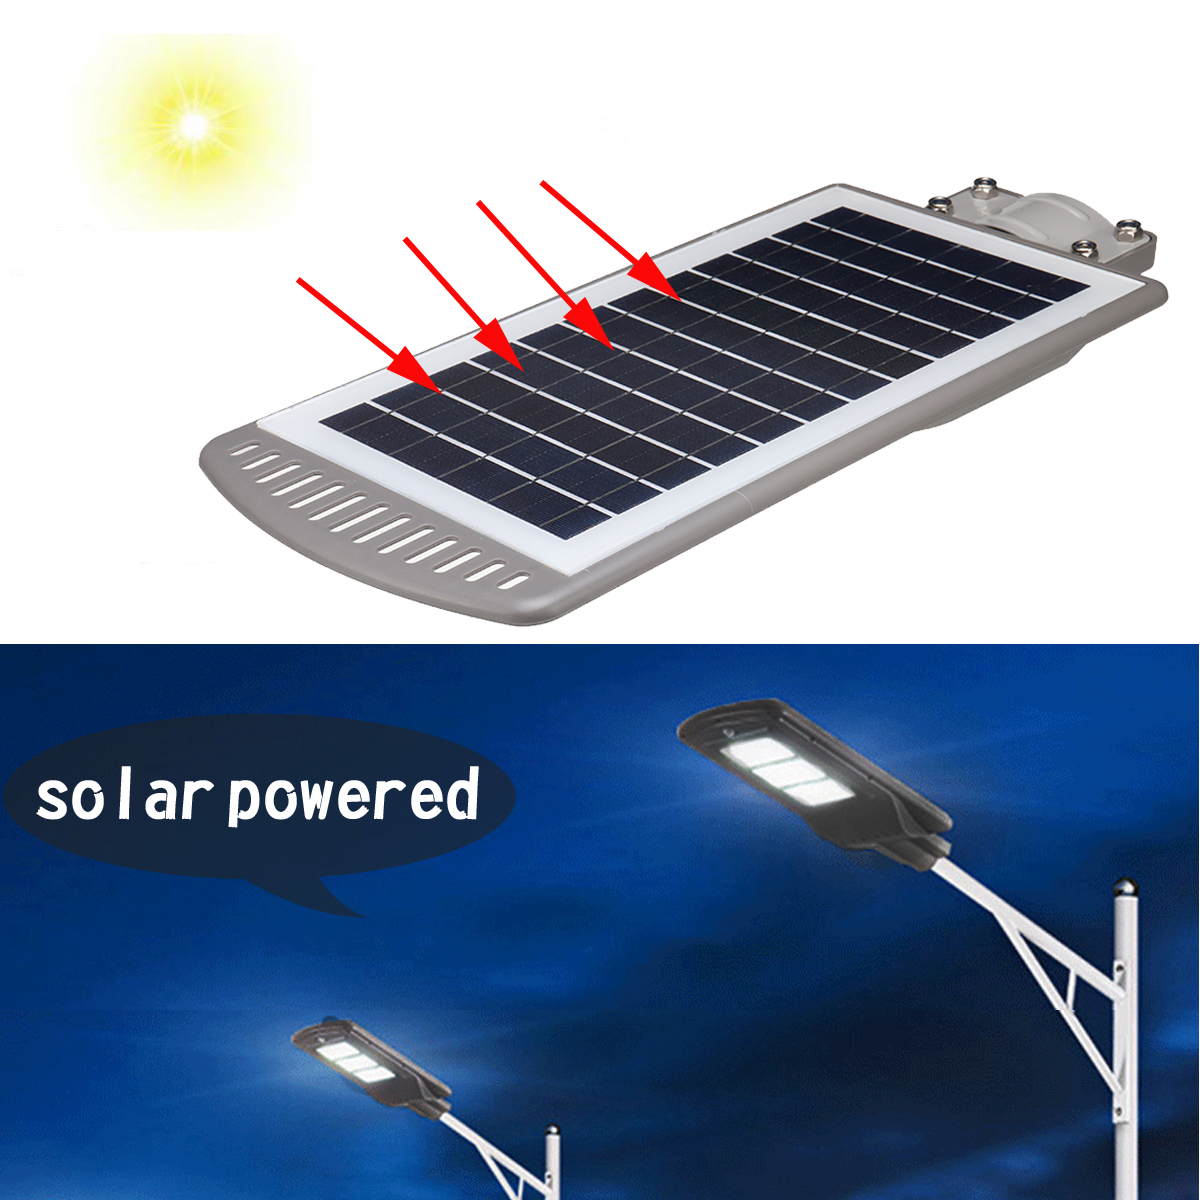 цена на 1PC 40W Solar Powered Panel LED Solar Street Light All-in-1 Time Switch Waterproof IP67 Wall Lighting Lamp for Outdoor Garden